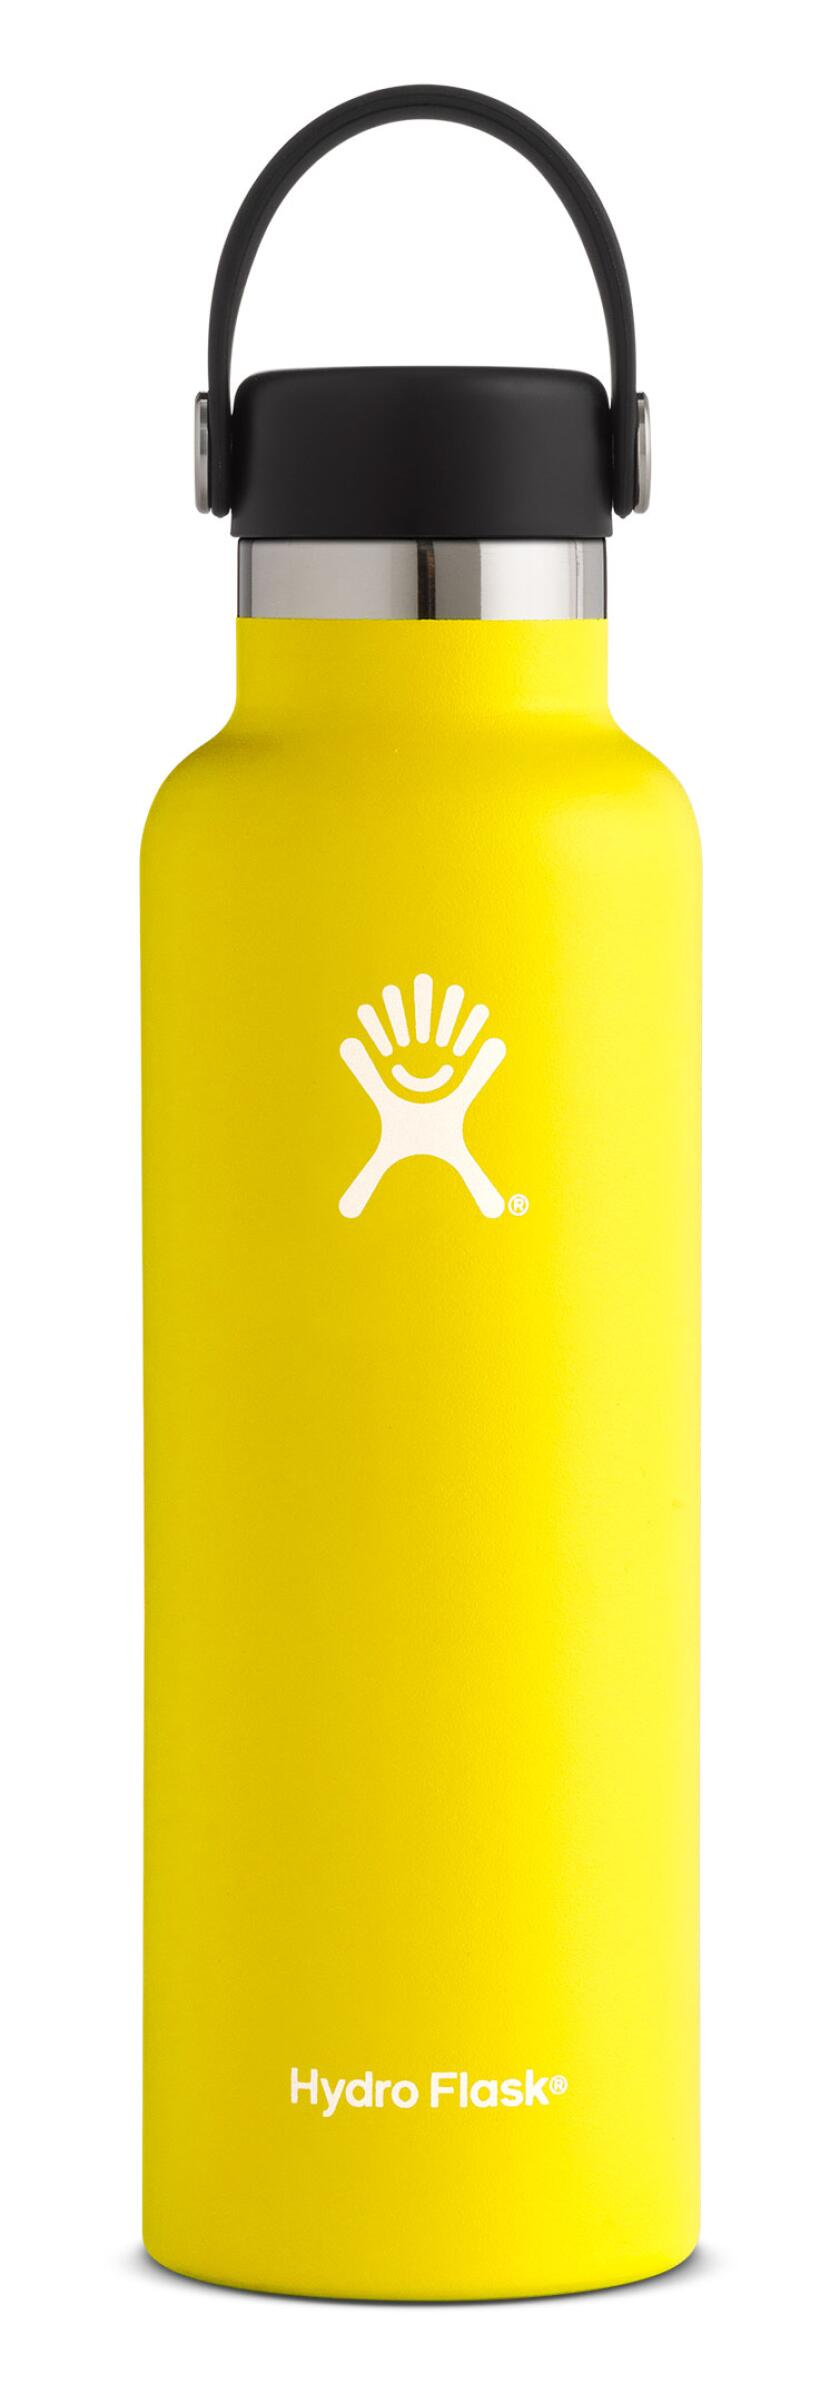 Hydro-Flask-21-oz-Standard-Mouth-Lemon